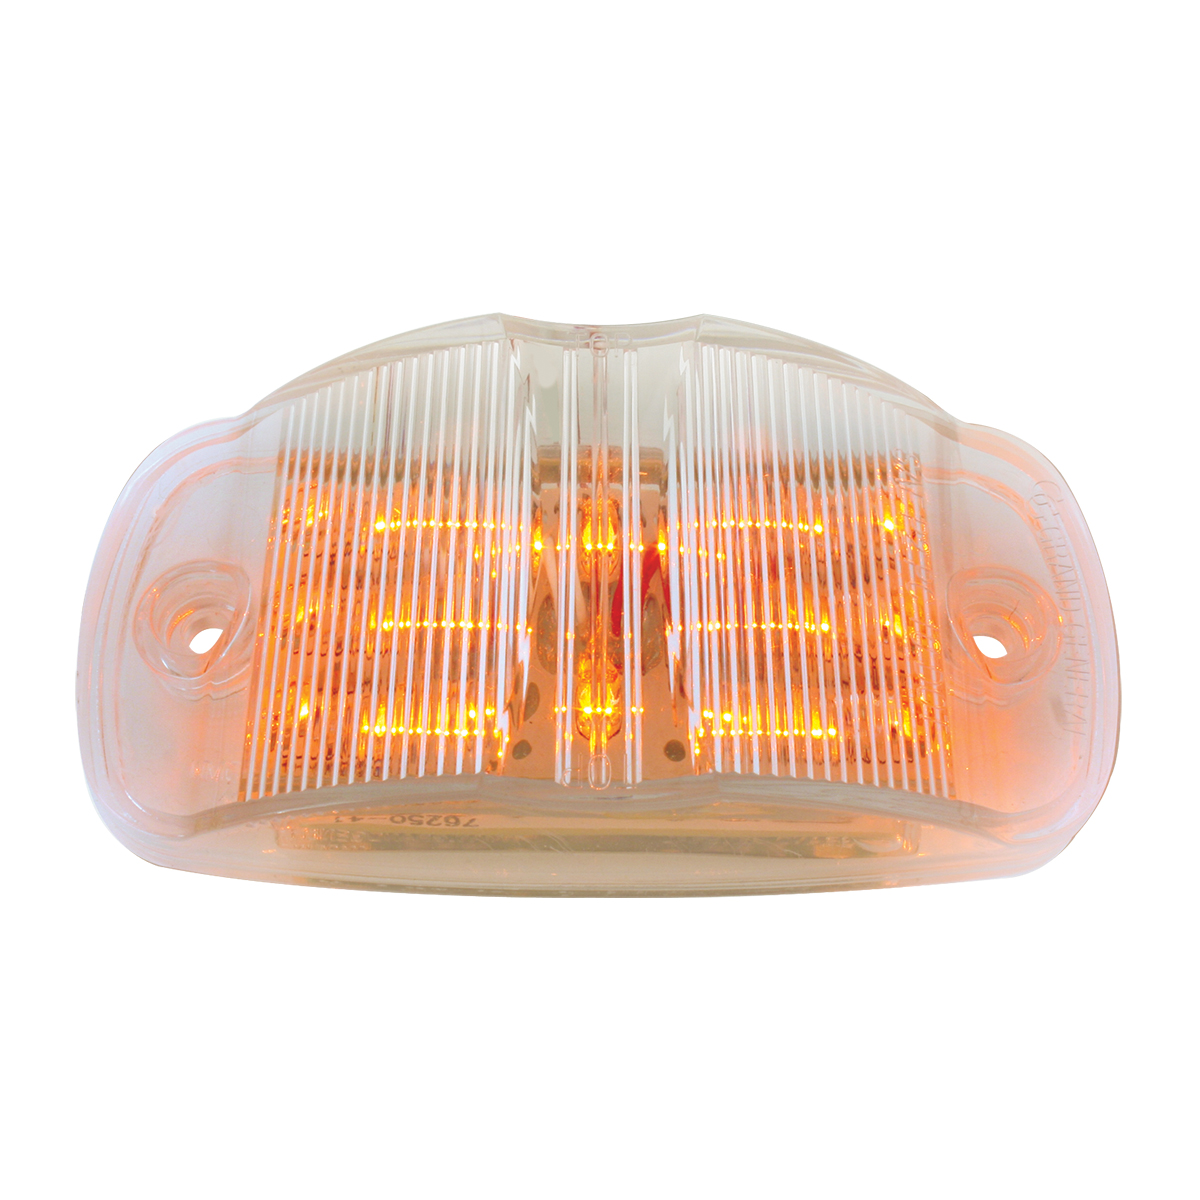 75161 Rectangular Camel Back Wide Angle Dual Function LED Light